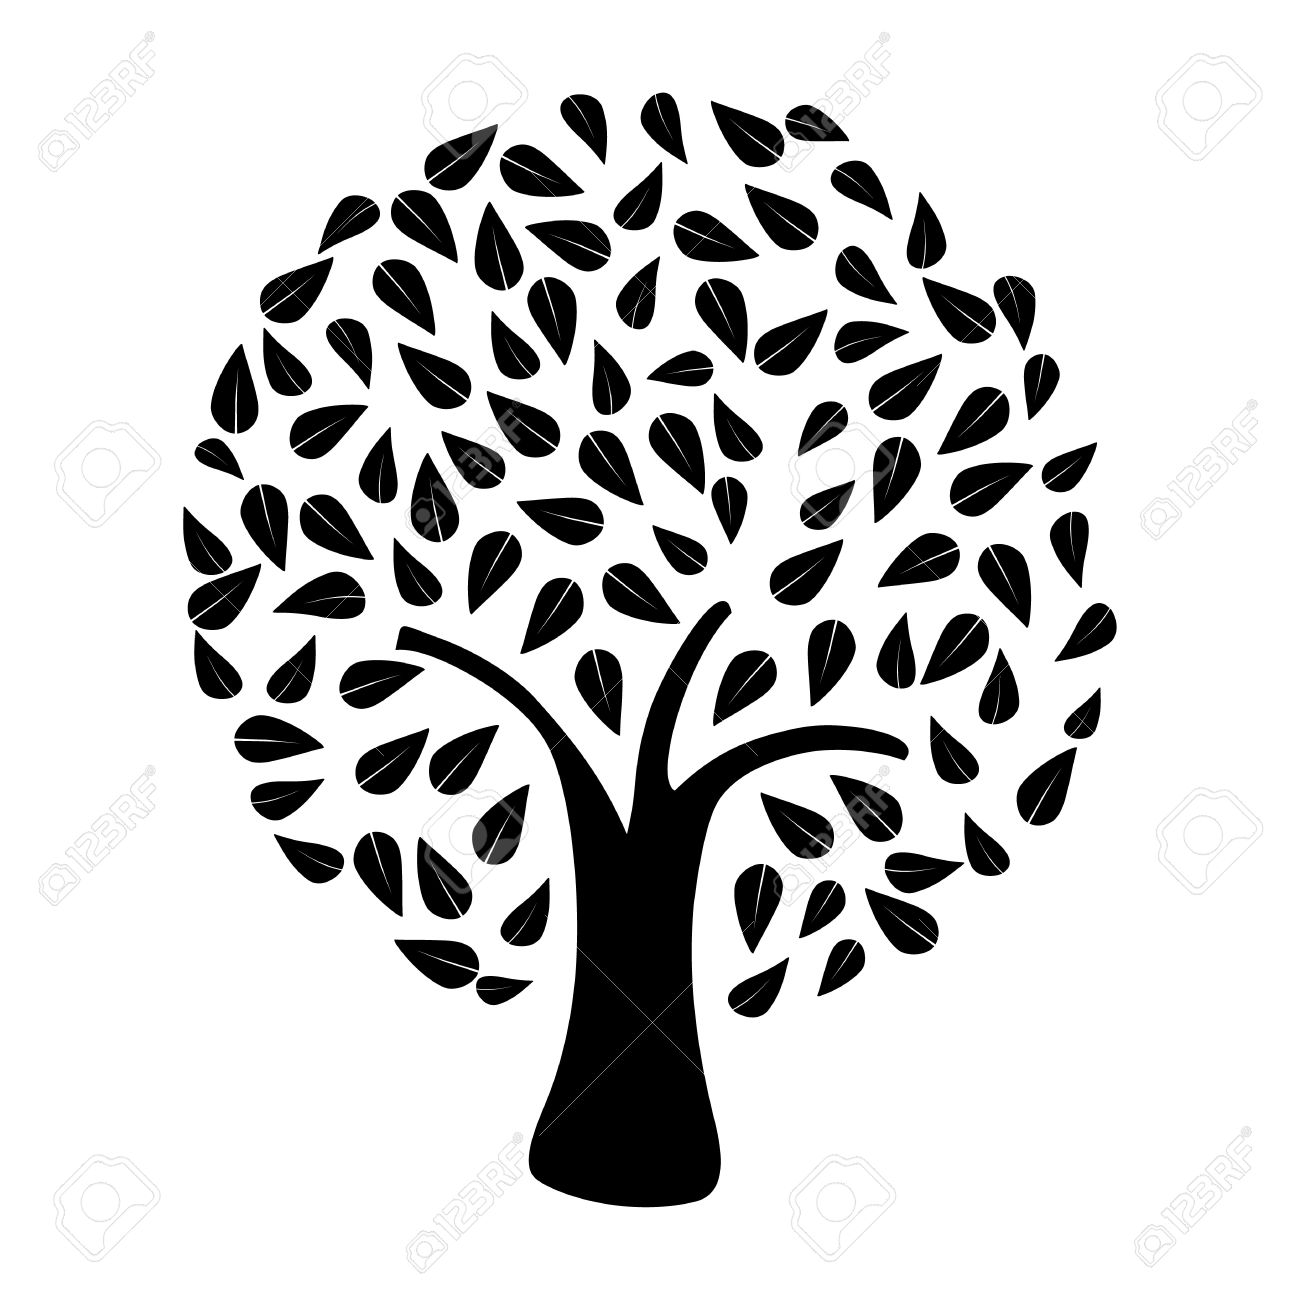 Black tree silhouette on white background . Vector file layered for easy manipulation and custom coloring. Stock Vector - 20602619